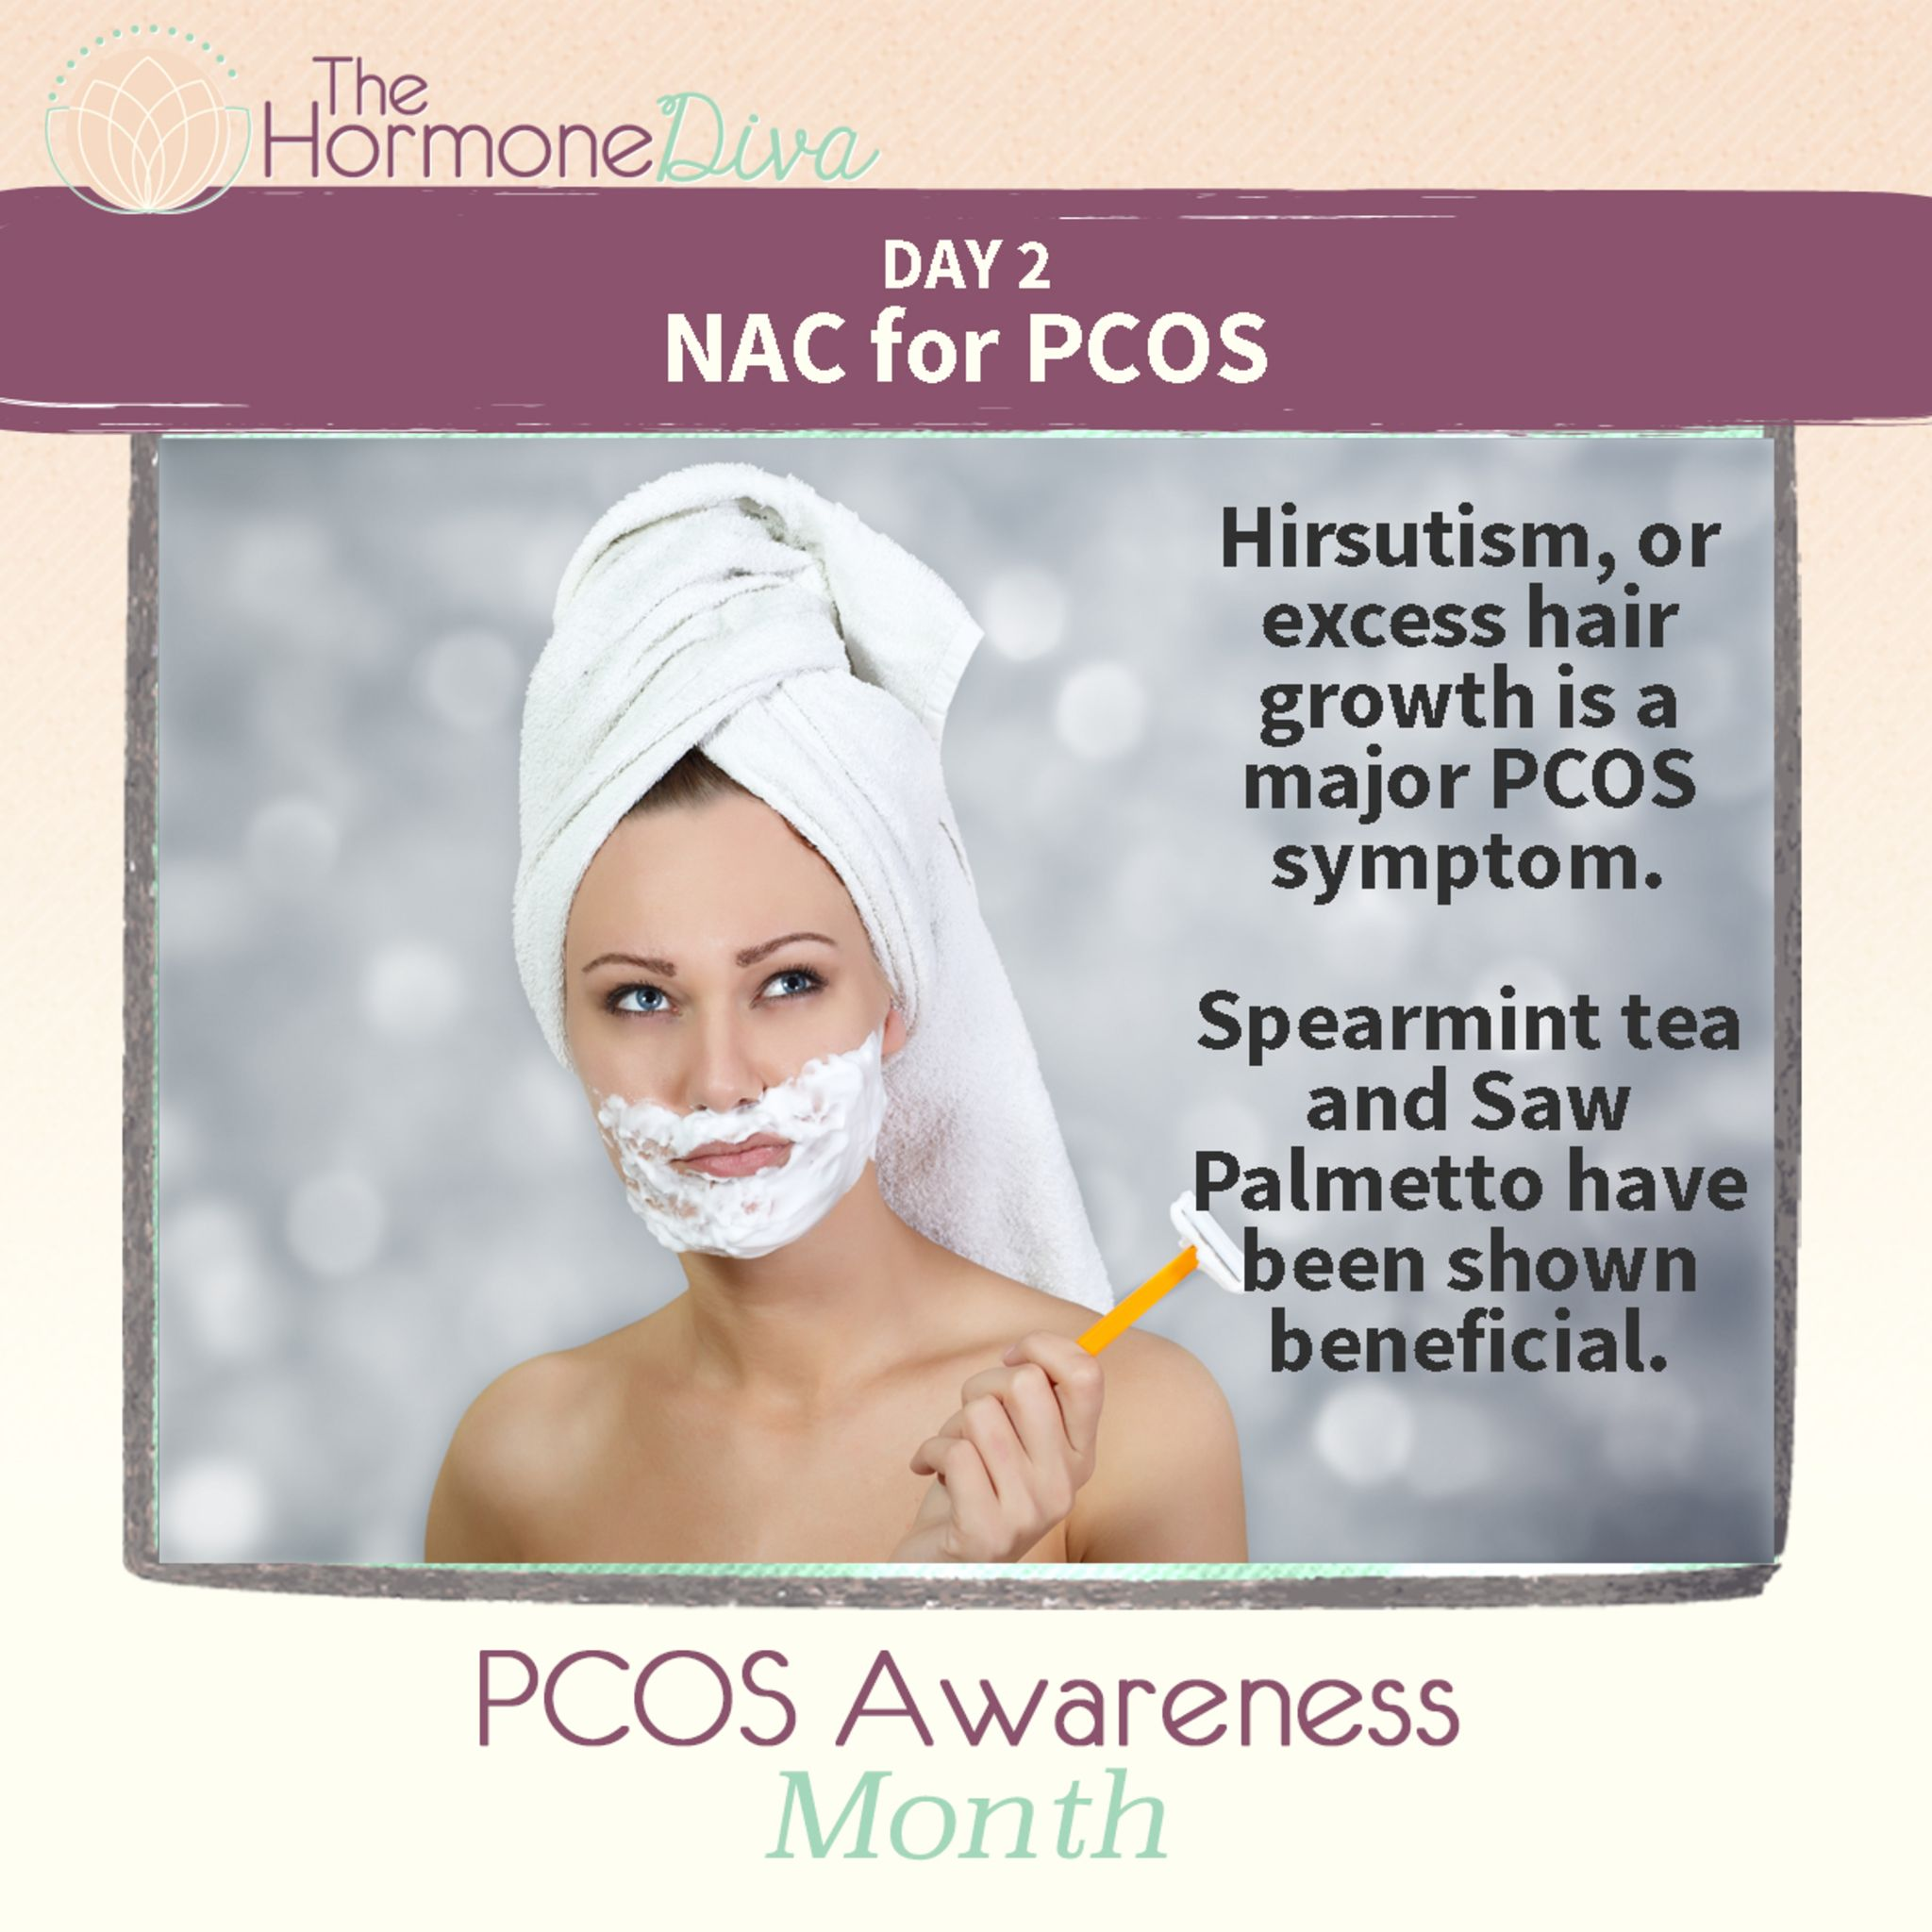 pcos body hair